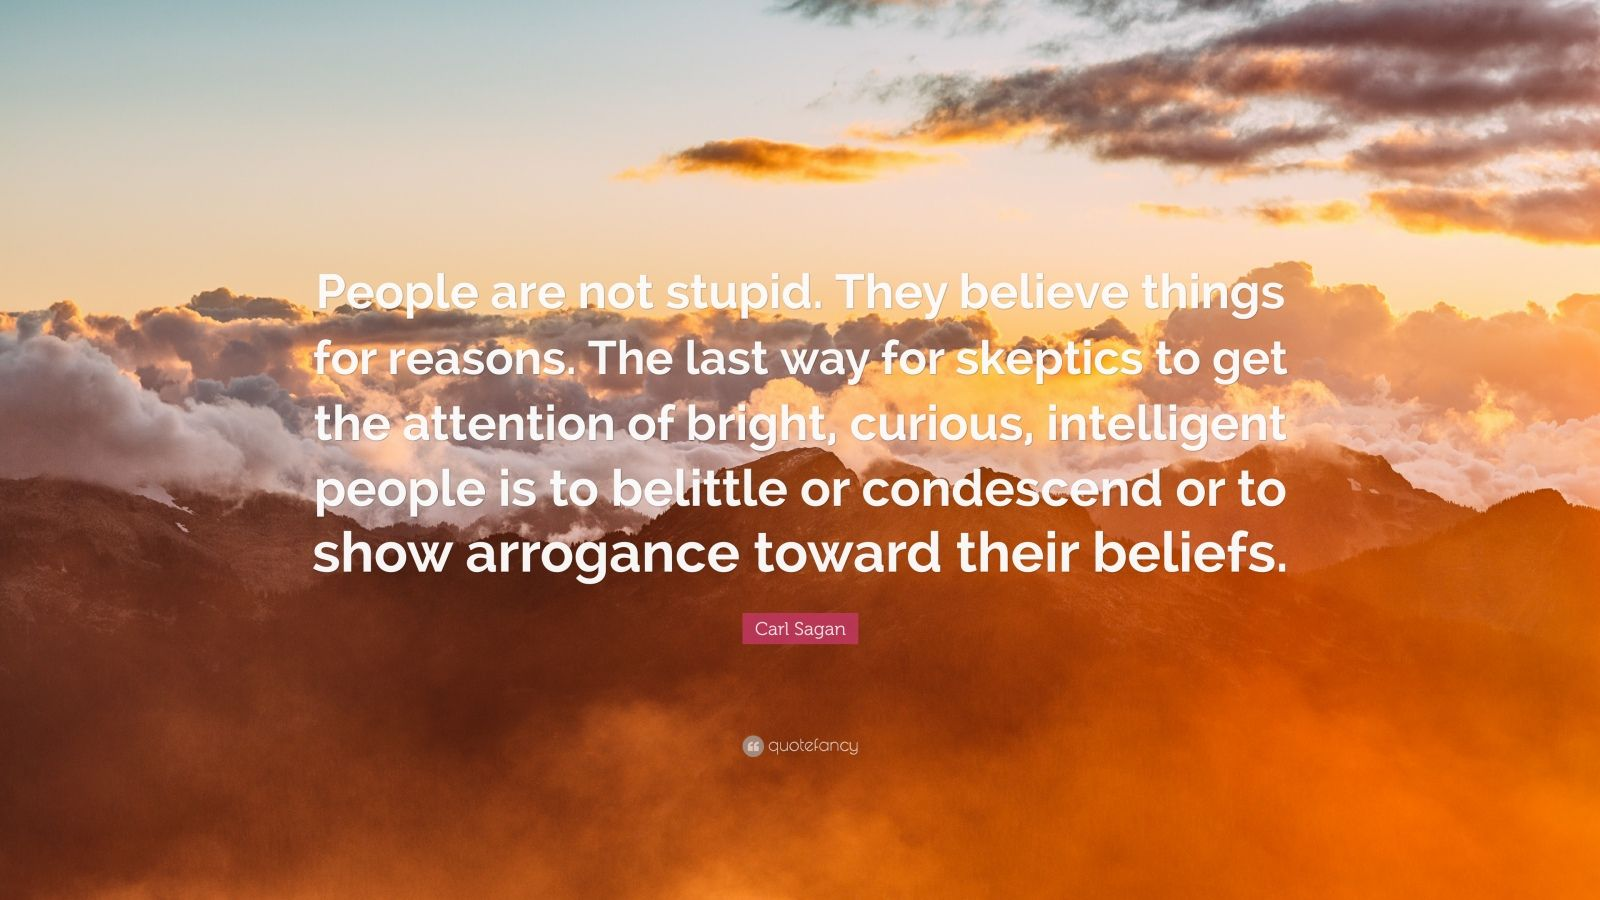 "Carl Sagan Quote: ""People are not stupid. They believe things for reasons. The last way for skeptics to get the attention of bright, curious, intelligent people is to belittle or condescend or to show arrogance toward their beliefs."""